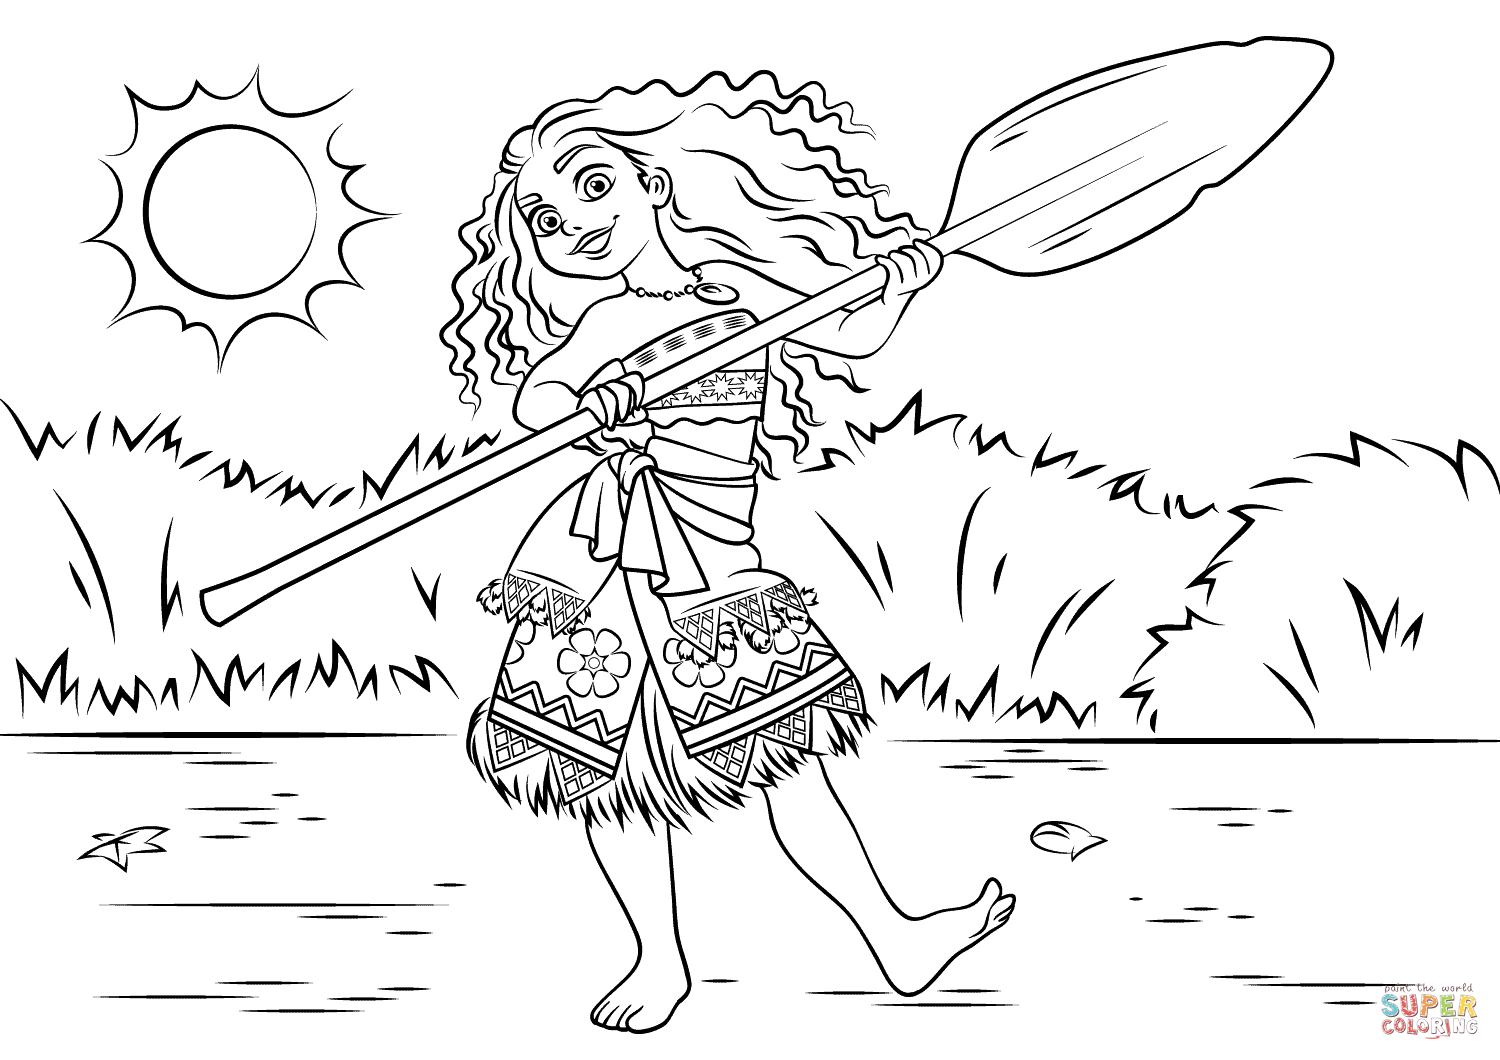 Princess Moana Waialiki Super Coloring Coloring pages